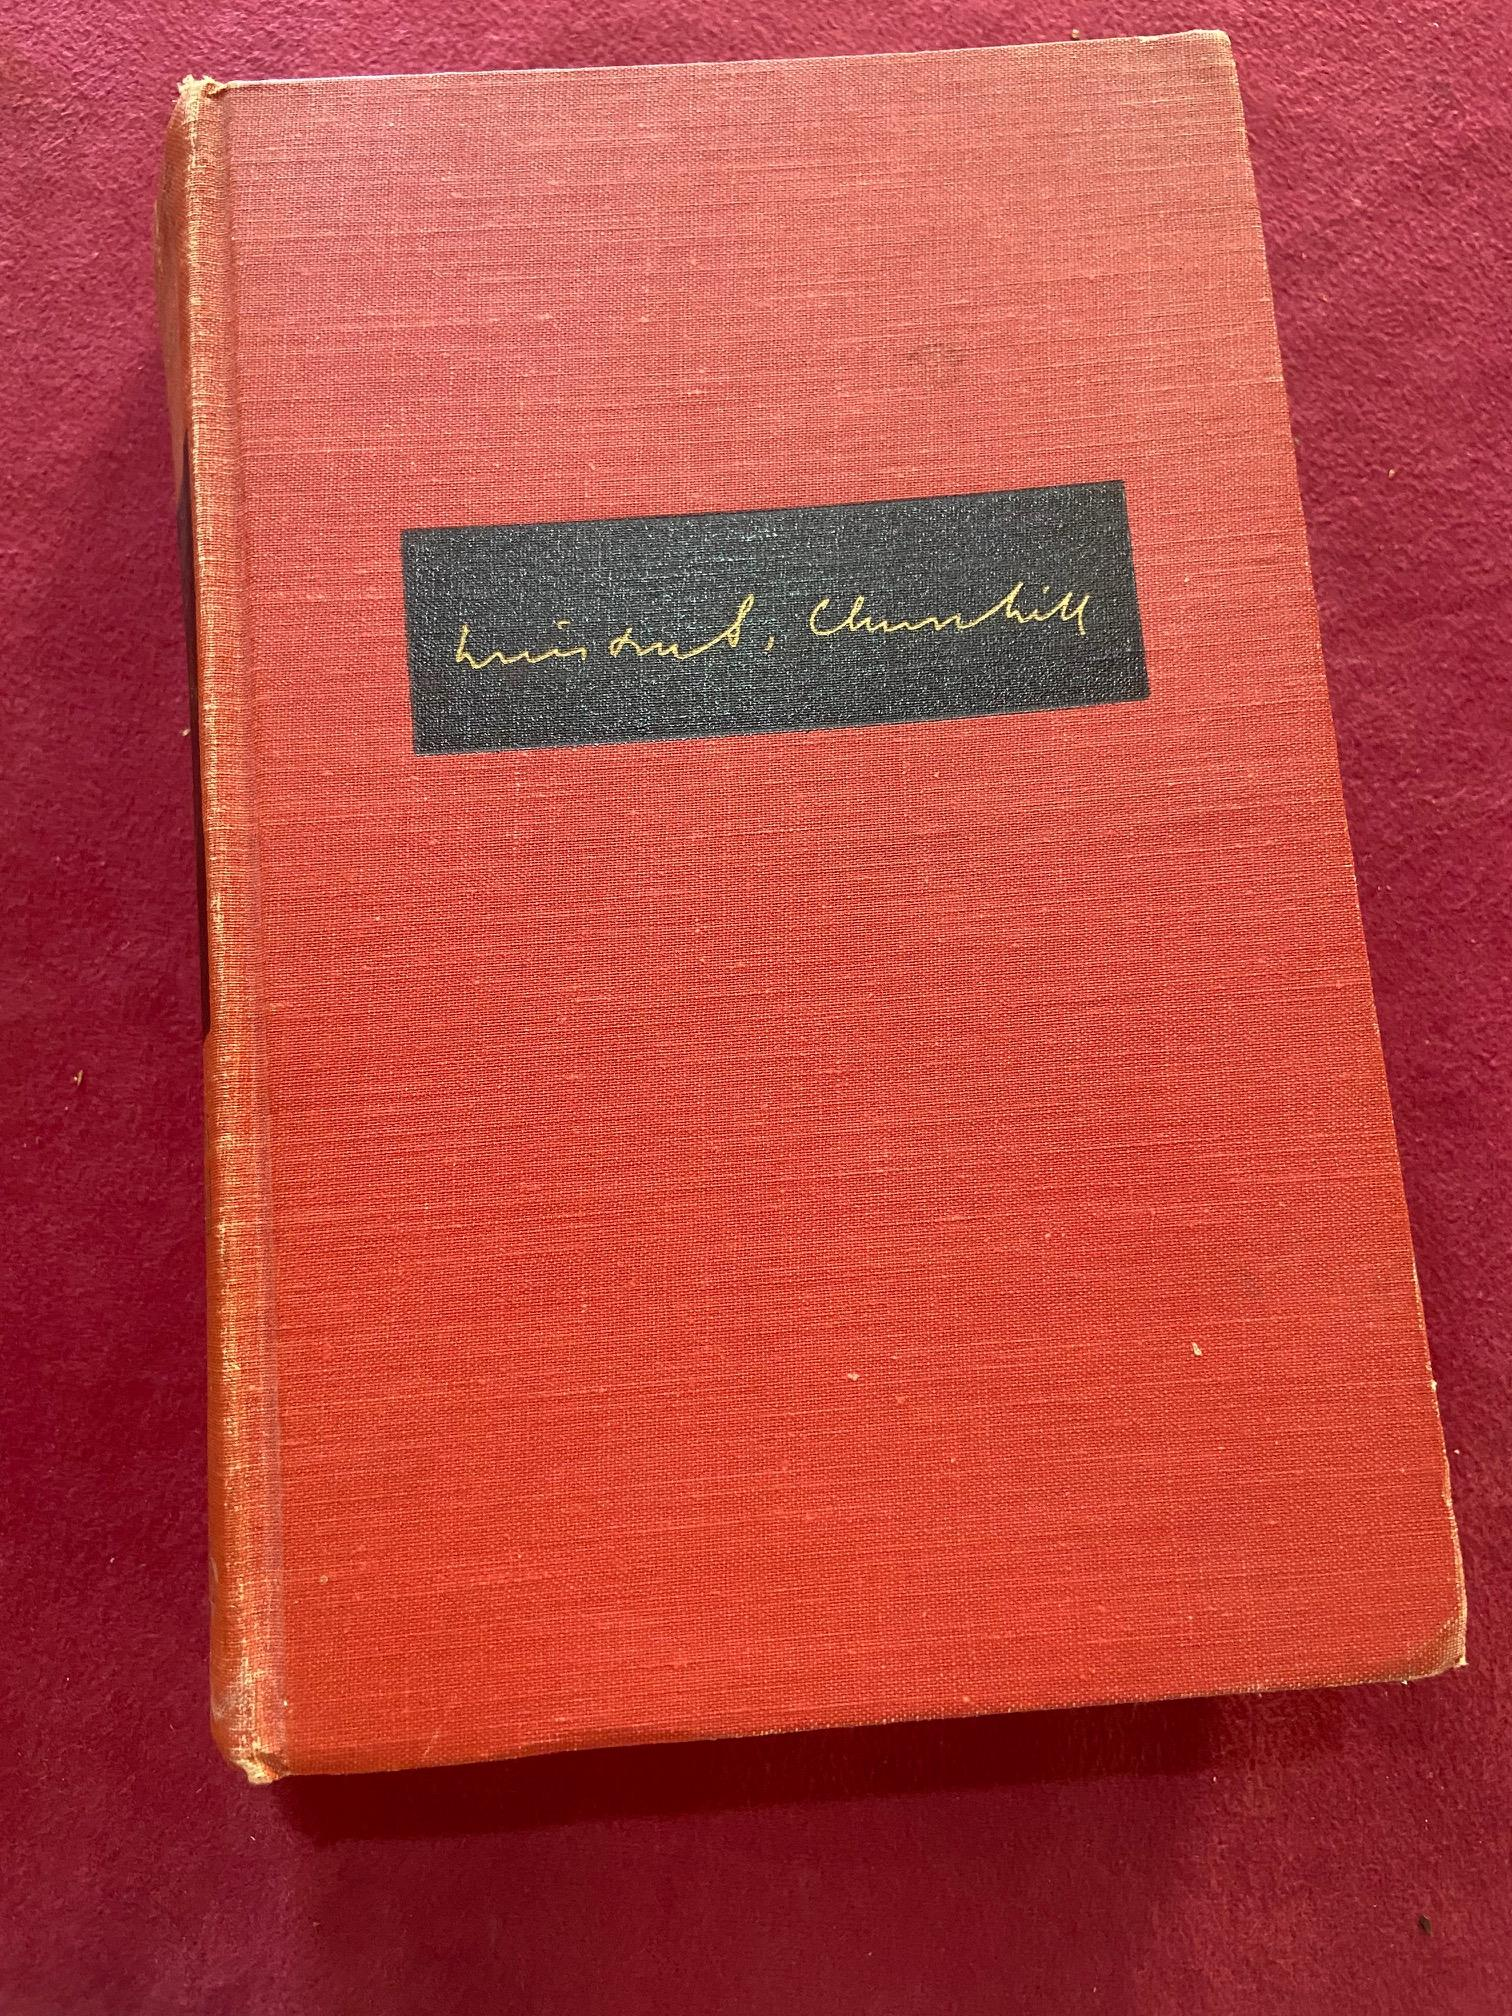 Signed by the Authorÿ Churchill (Winston S.)ÿTheir Finest Hour, Second World War, Vol. II only, - Image 20 of 22